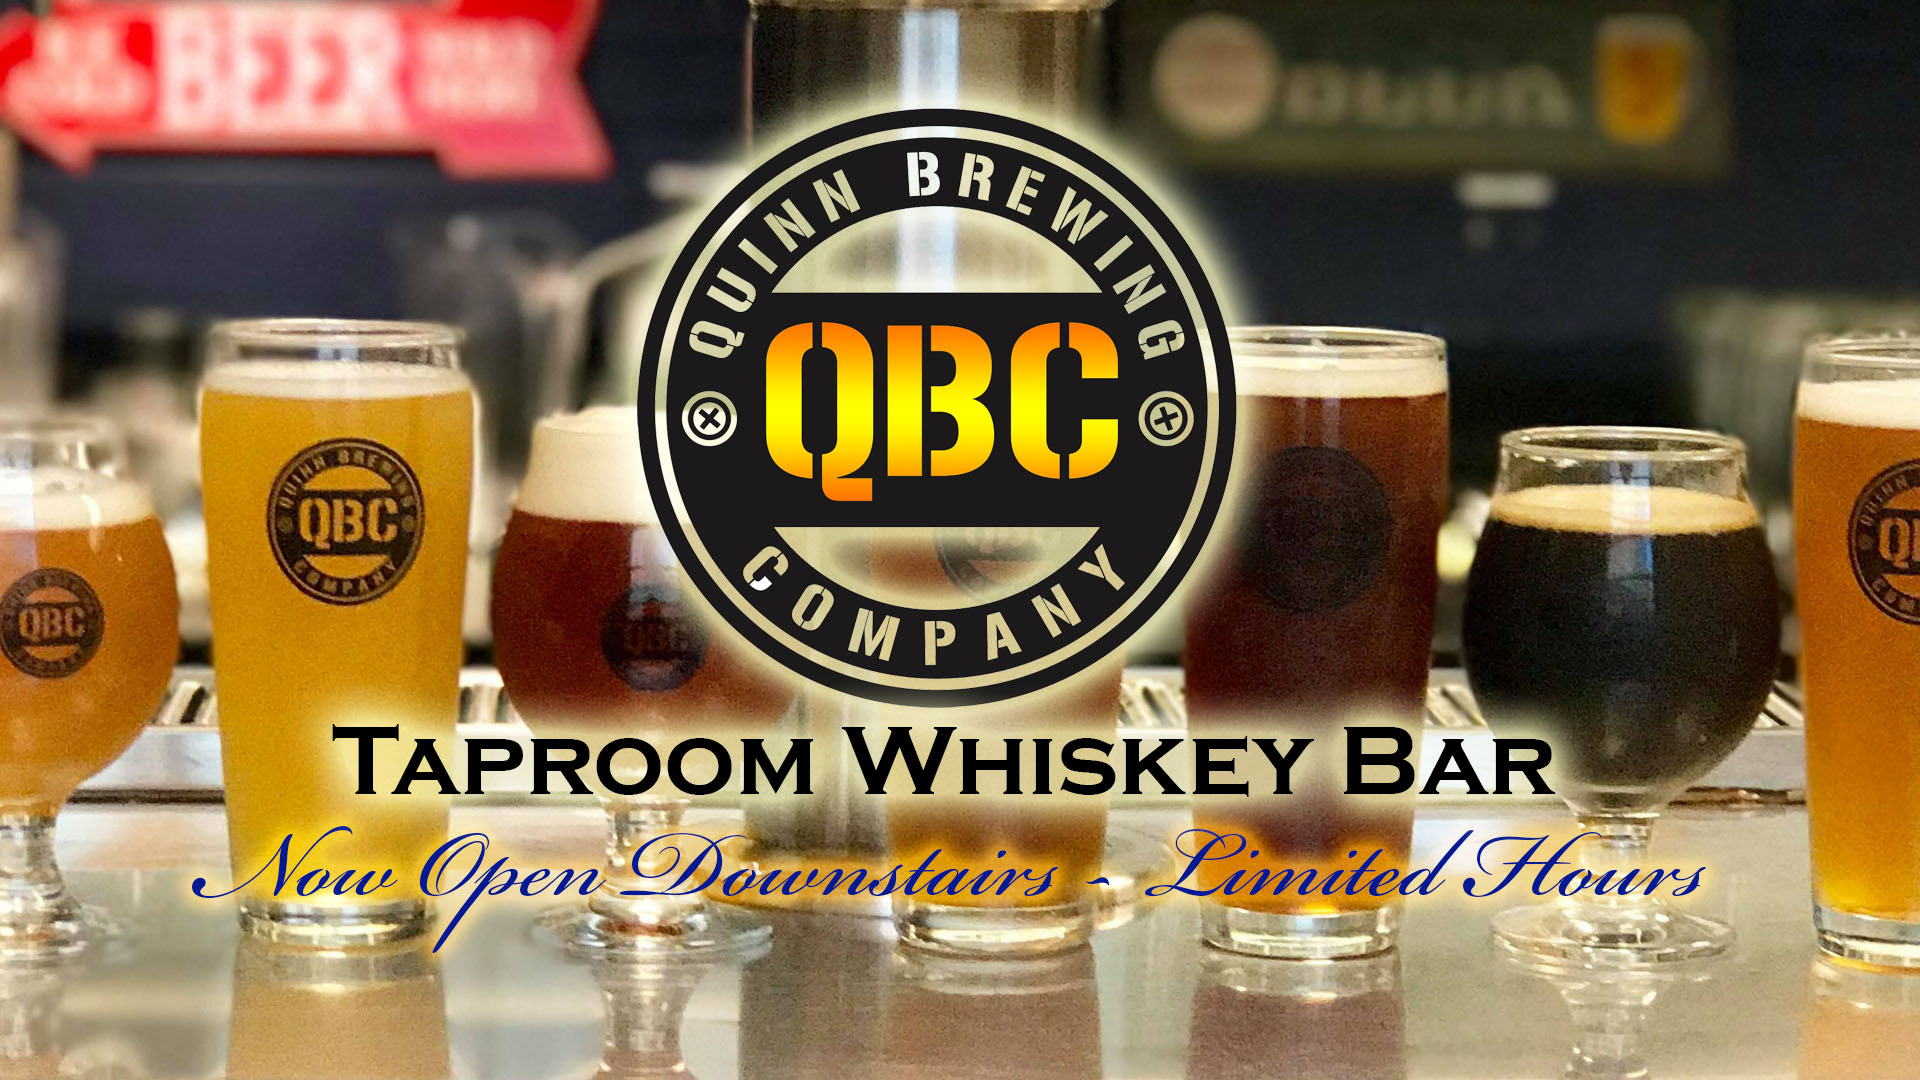 Quinn Brewing Company Taproom Whiskey Bar